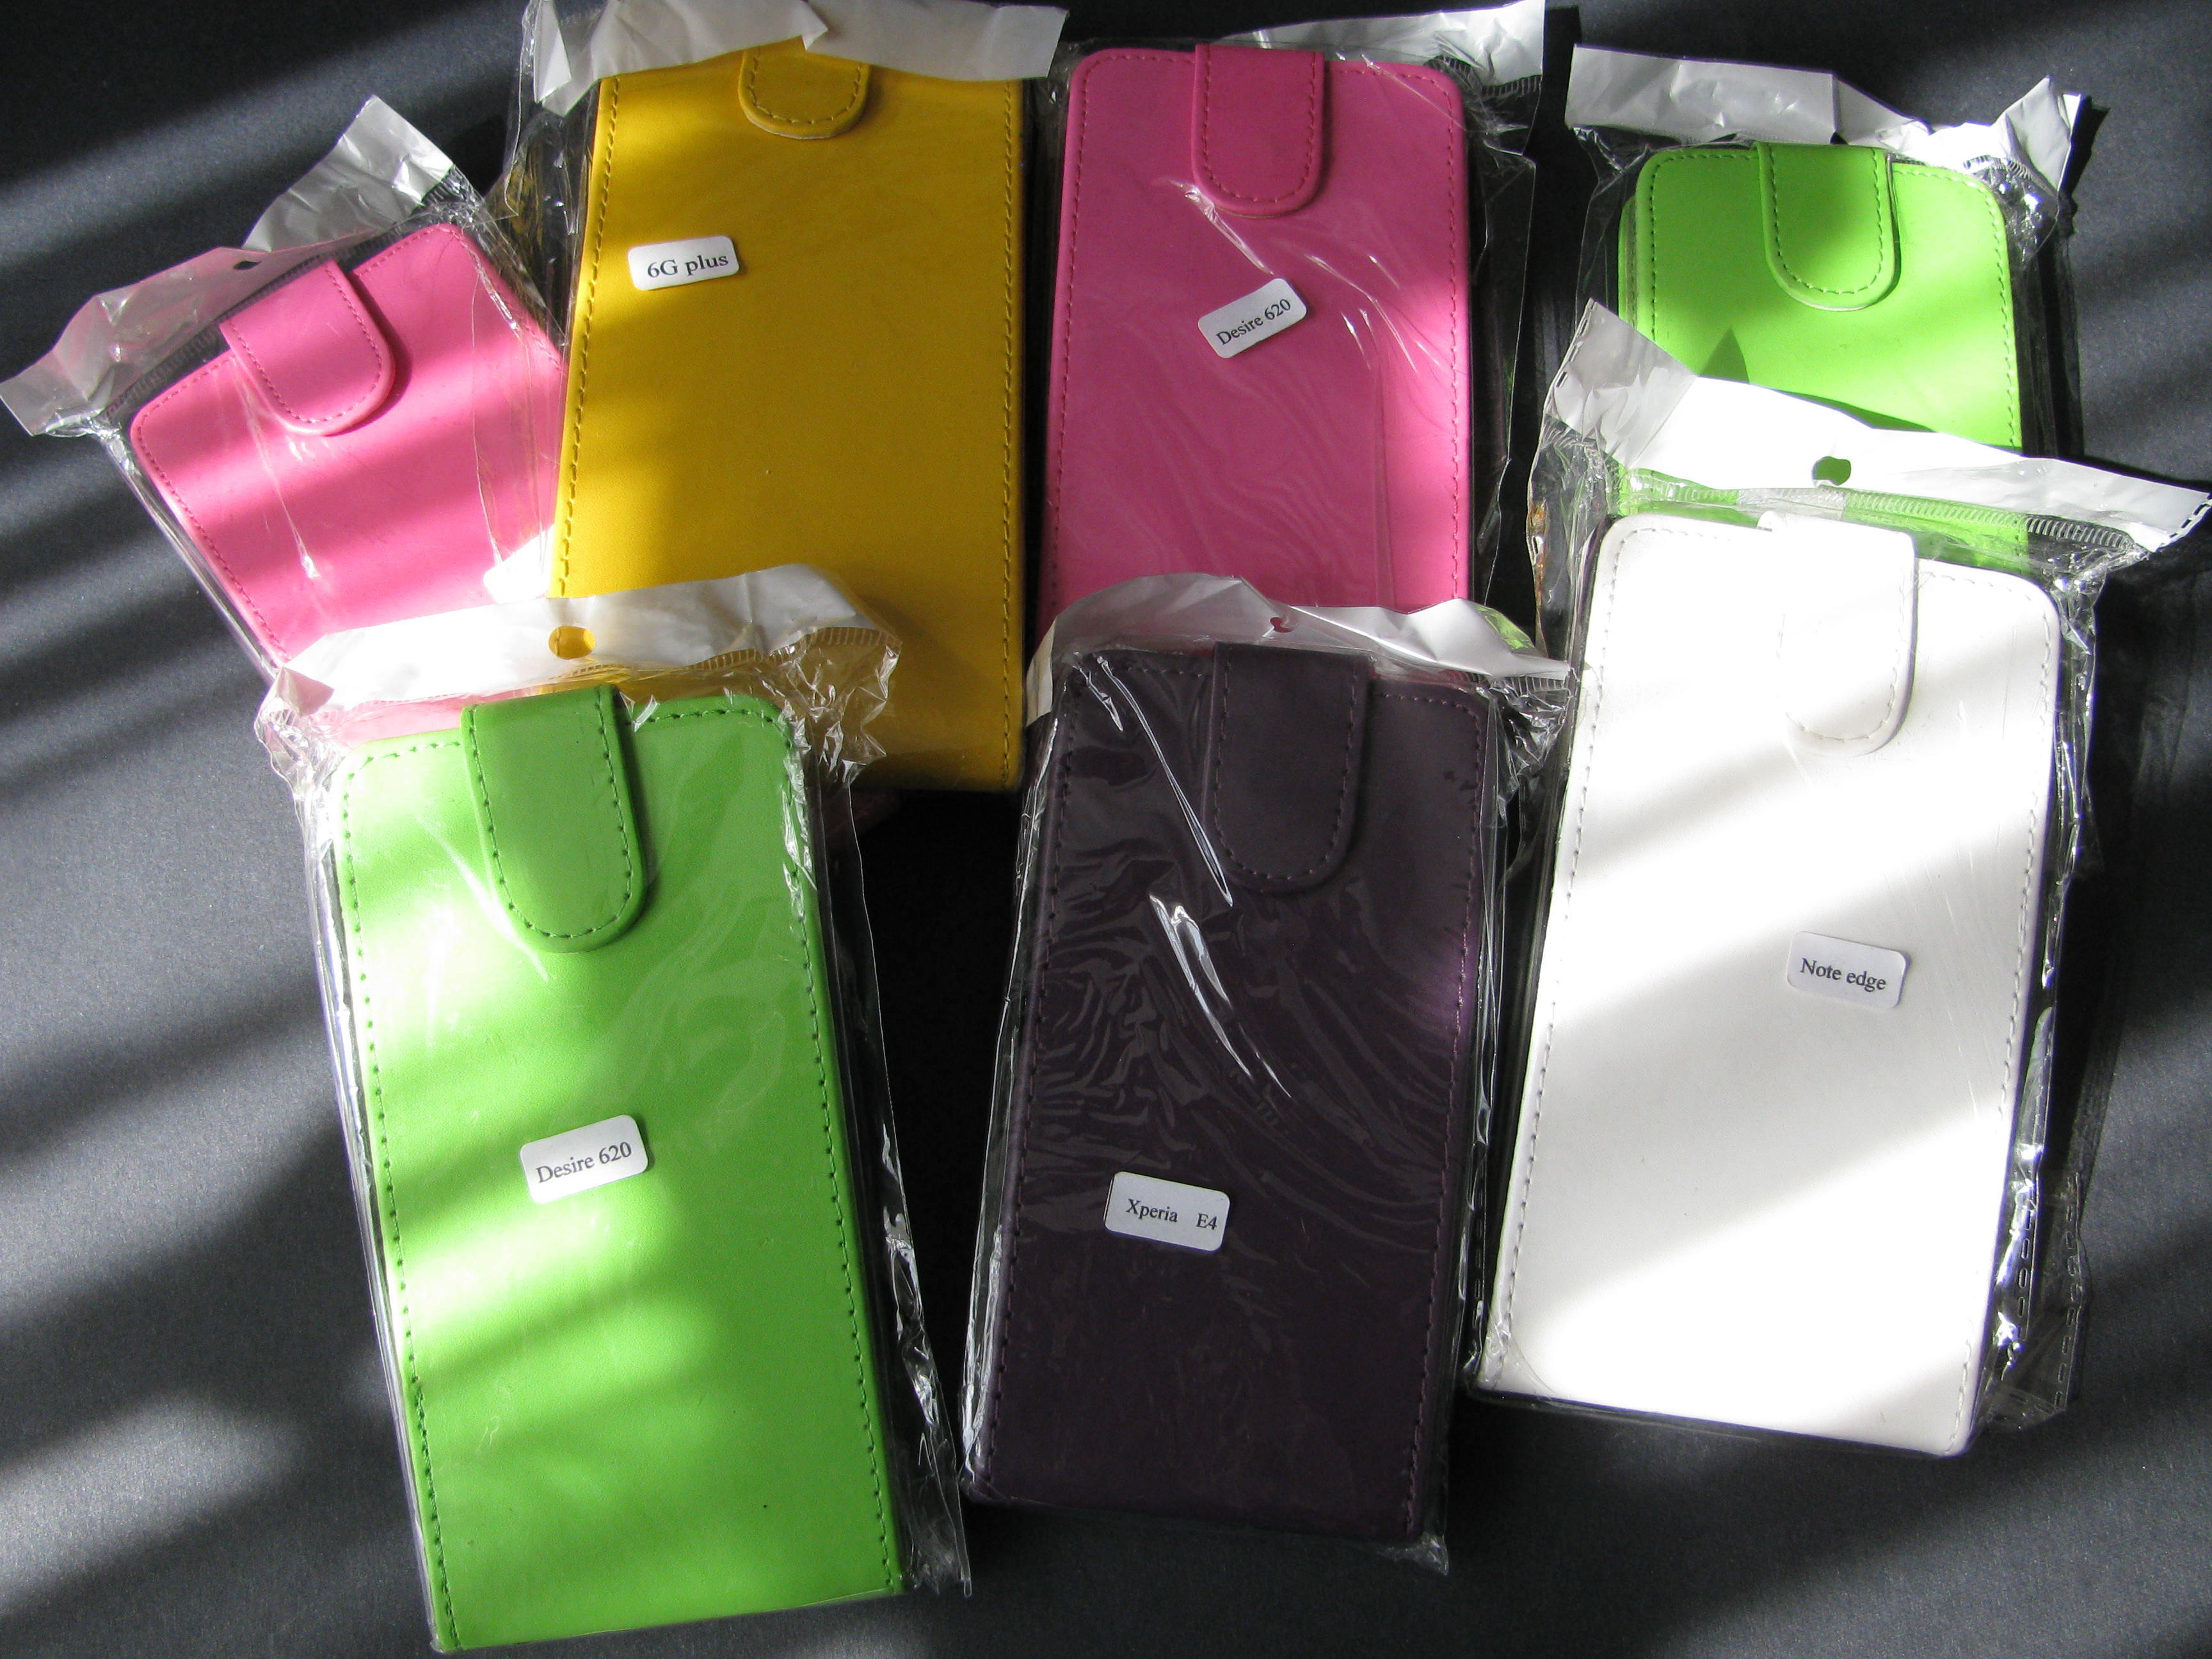 9 x Smart Phone Cases - Assorted Bundle - New in Packets